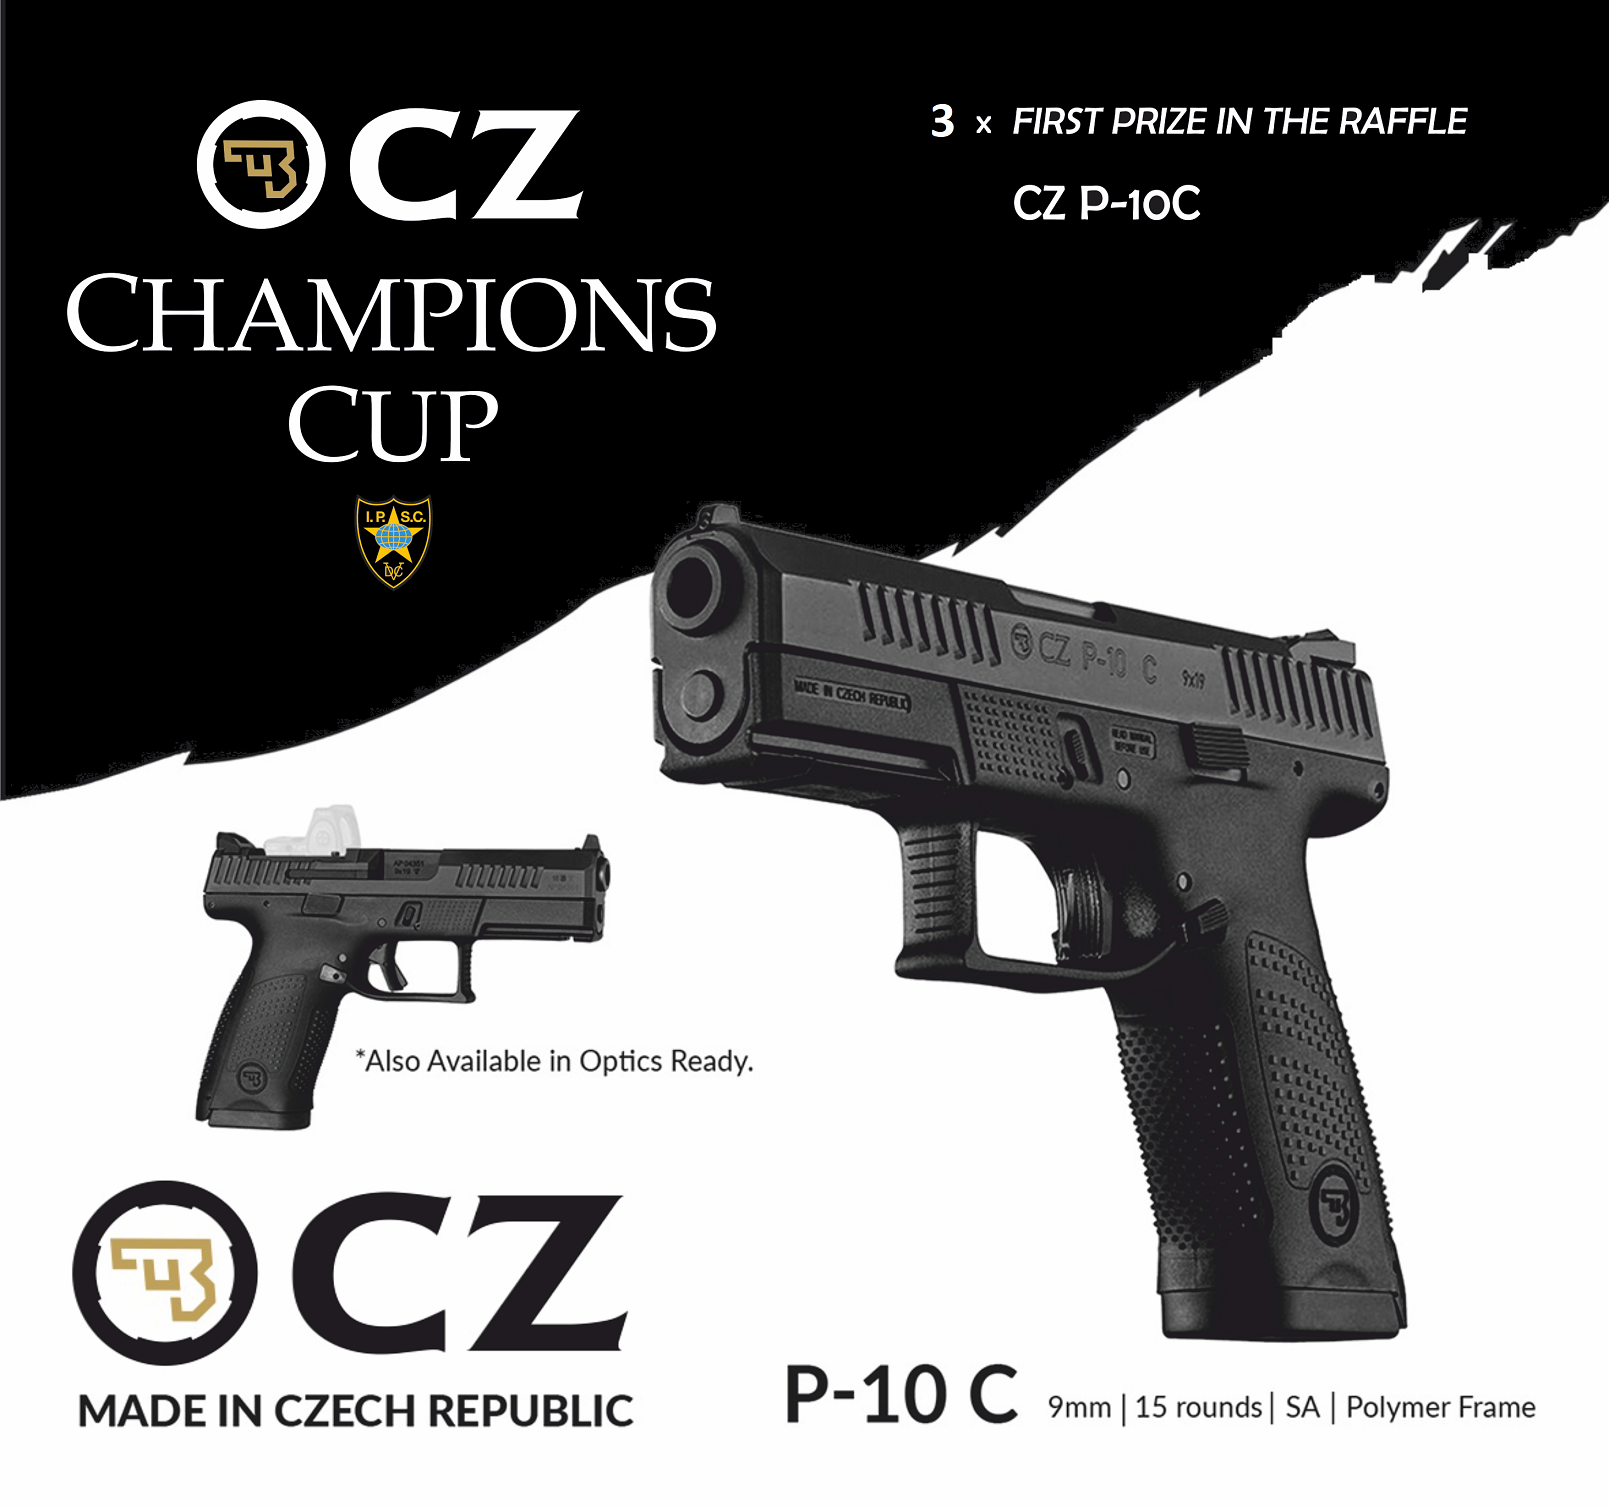 CZ CC BANNER TOMBOLA.png